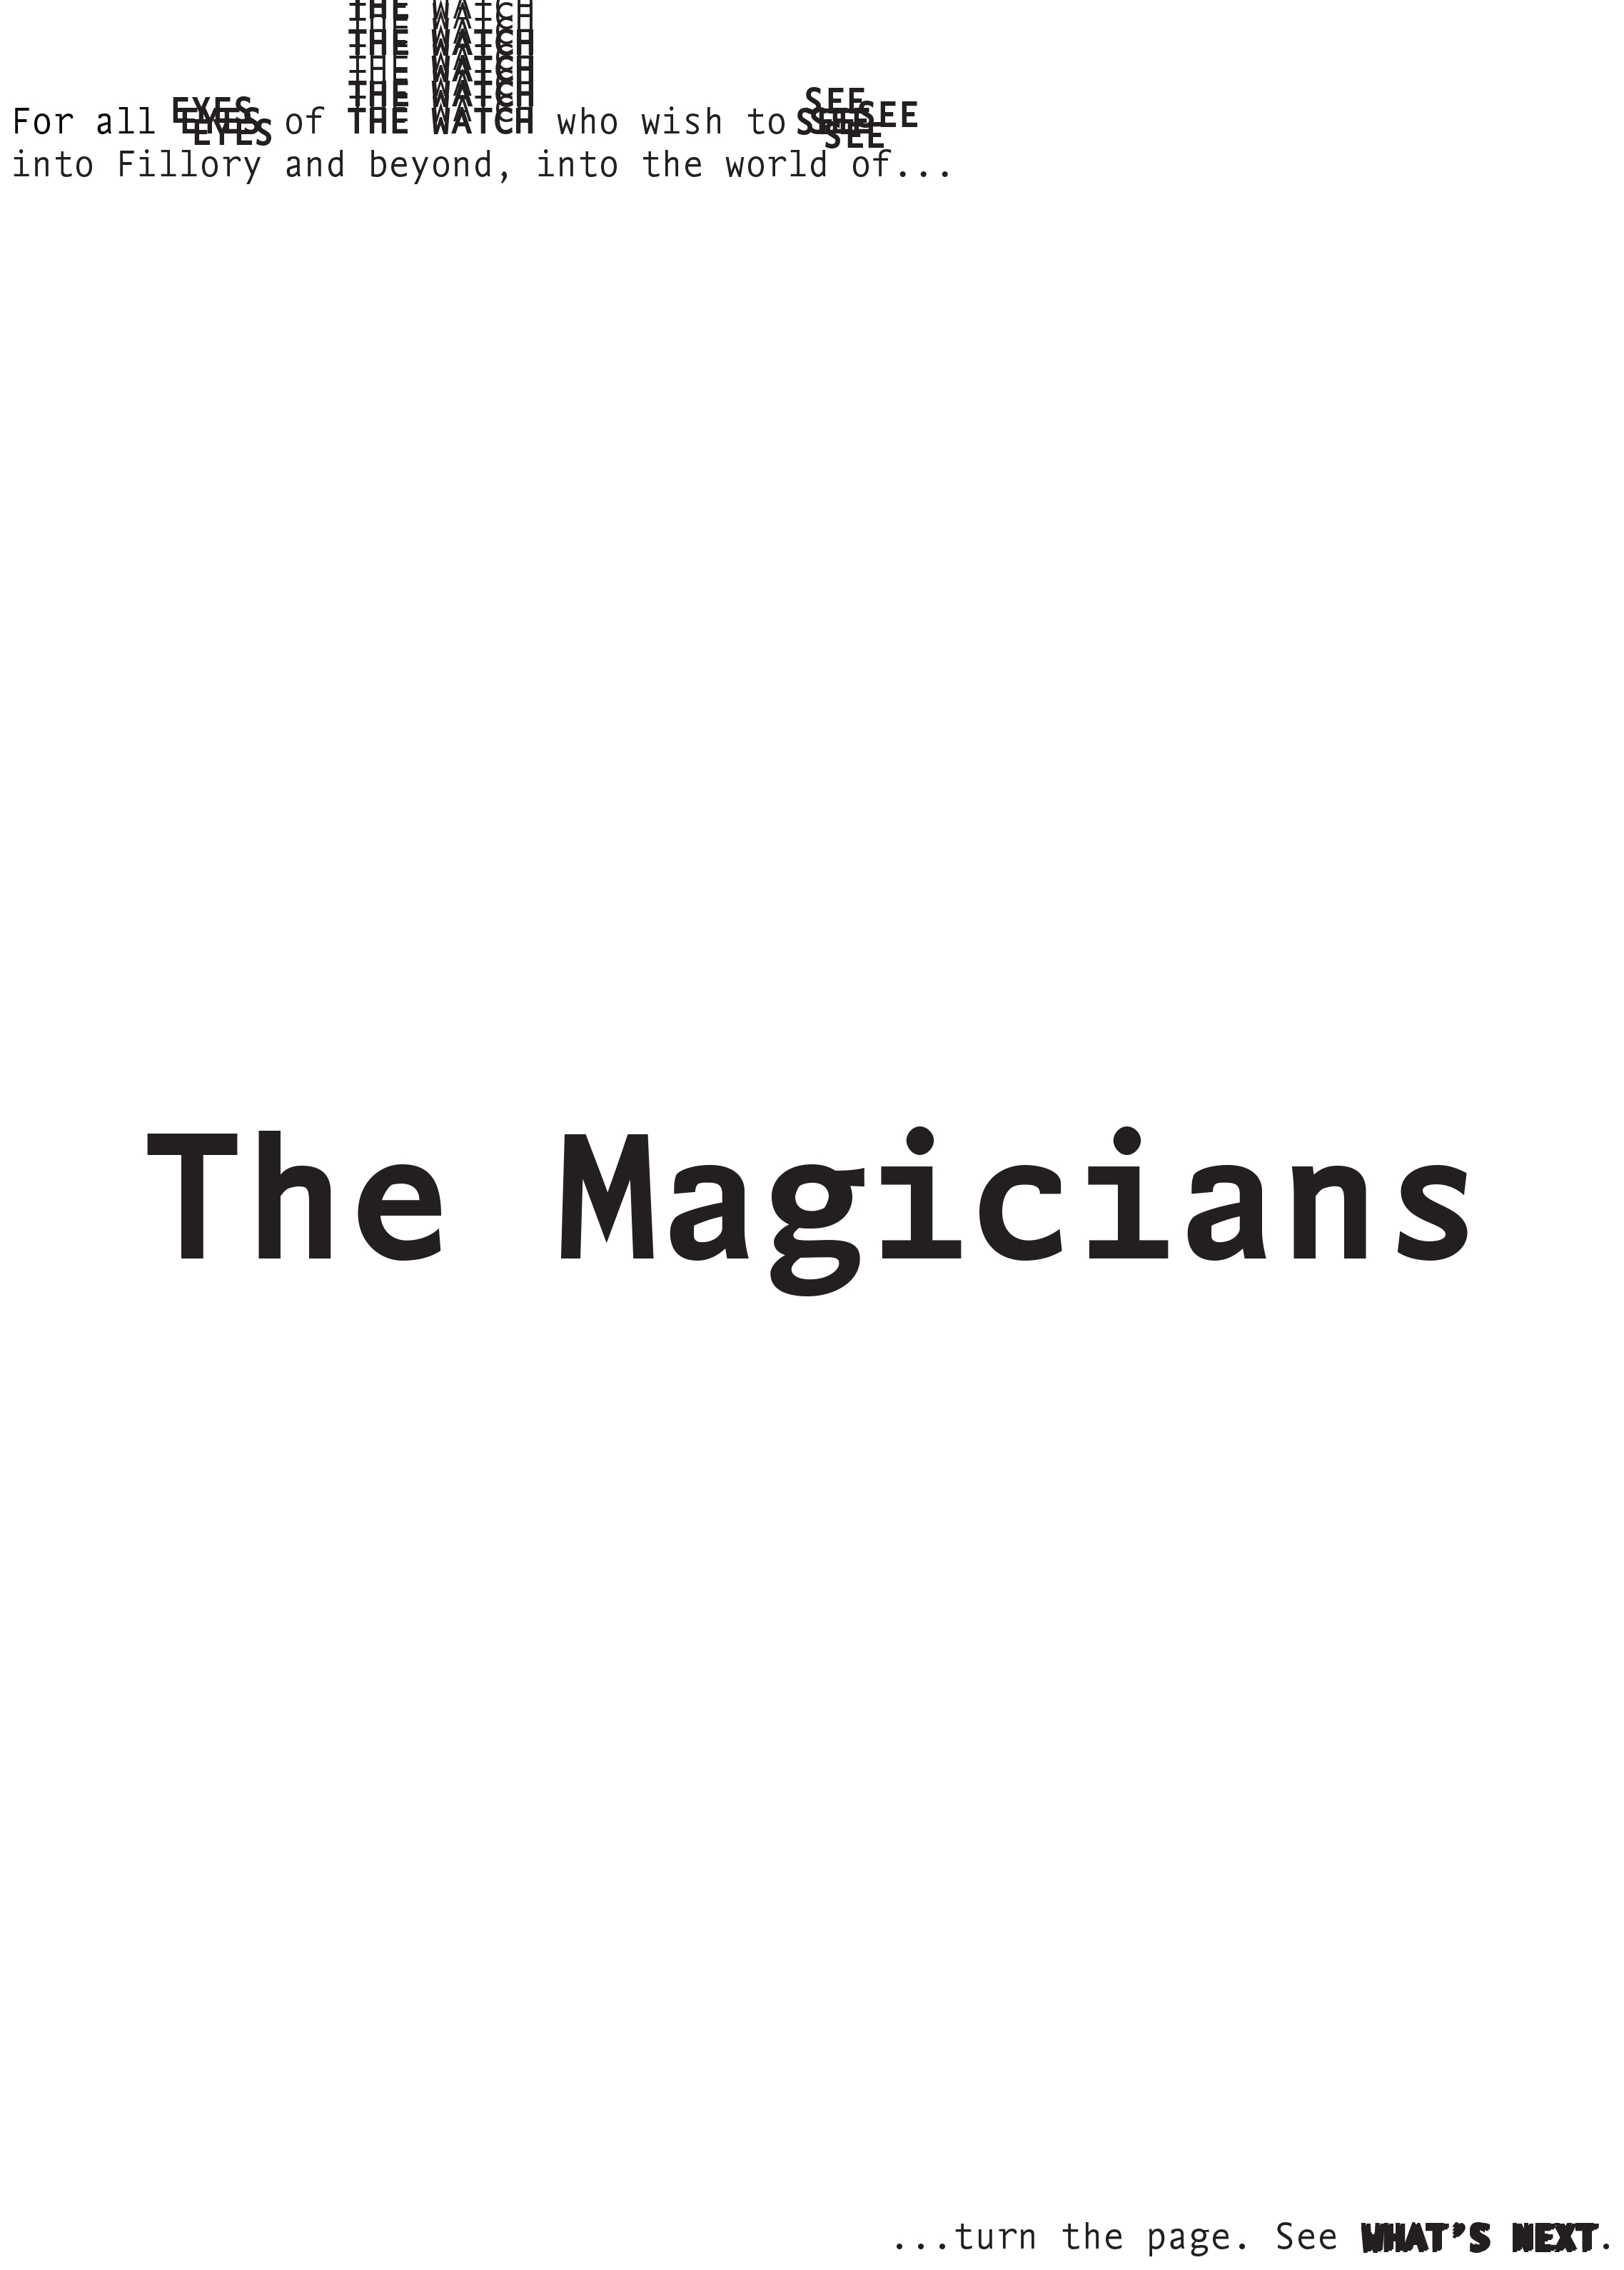 syfypedia the magicians title page.jpg